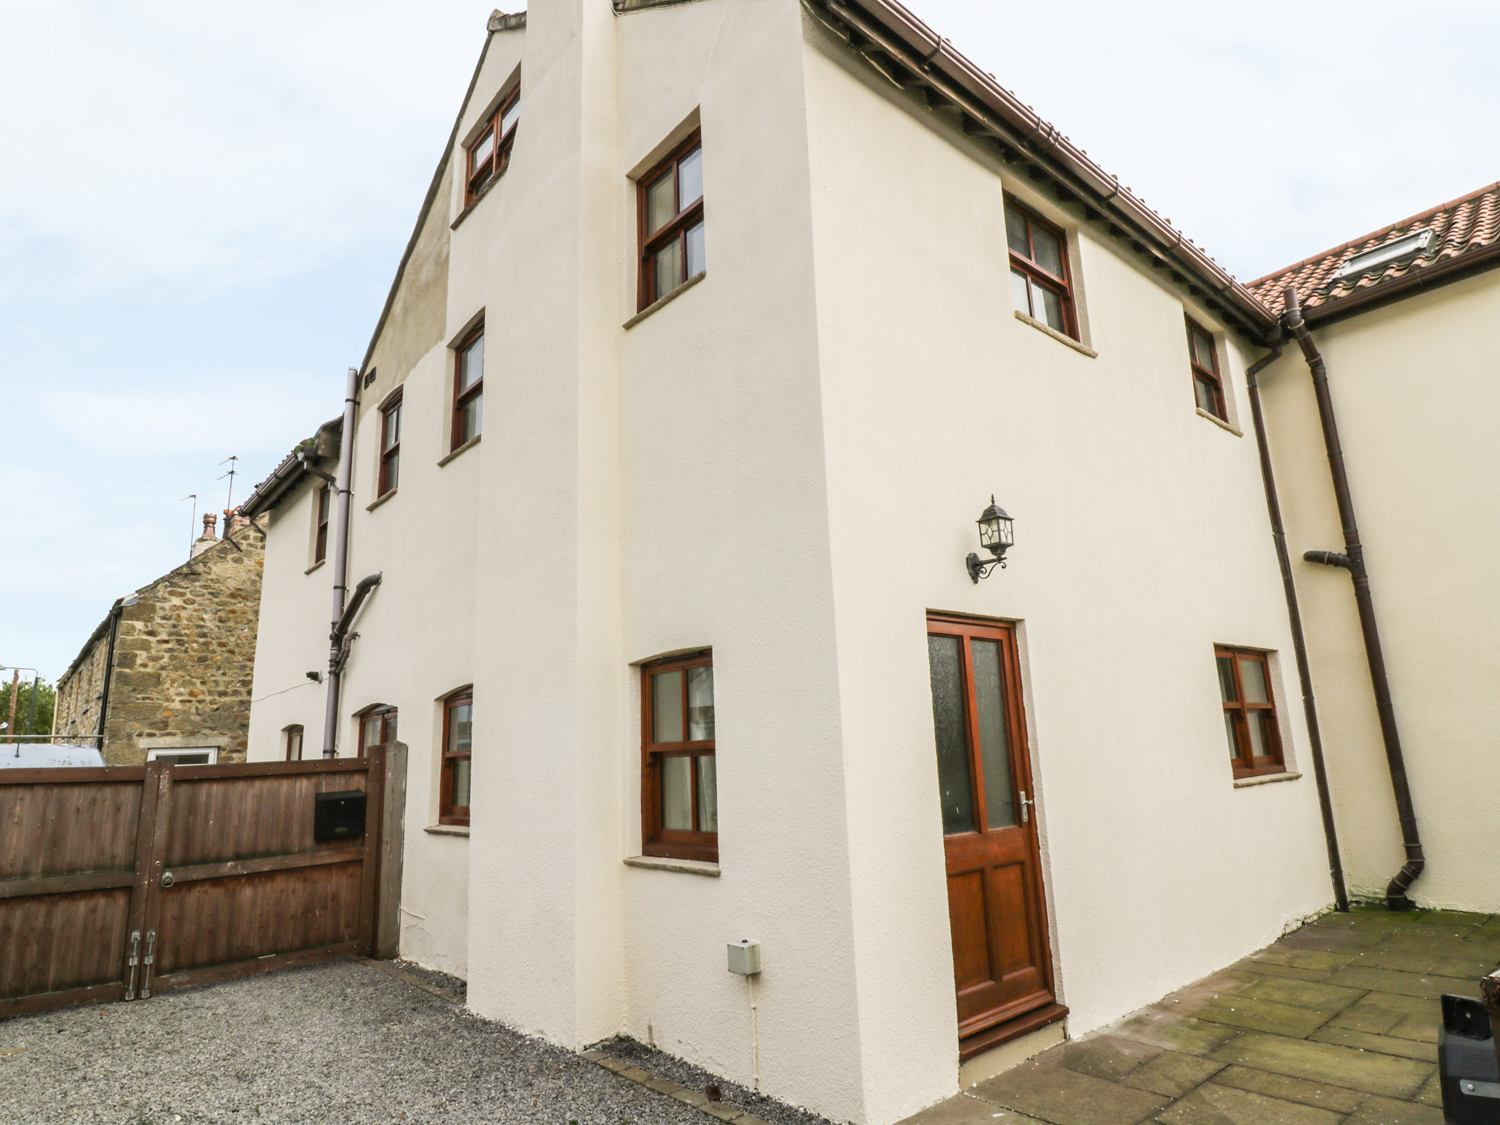 4 bedroom Cottage for rent in Masham